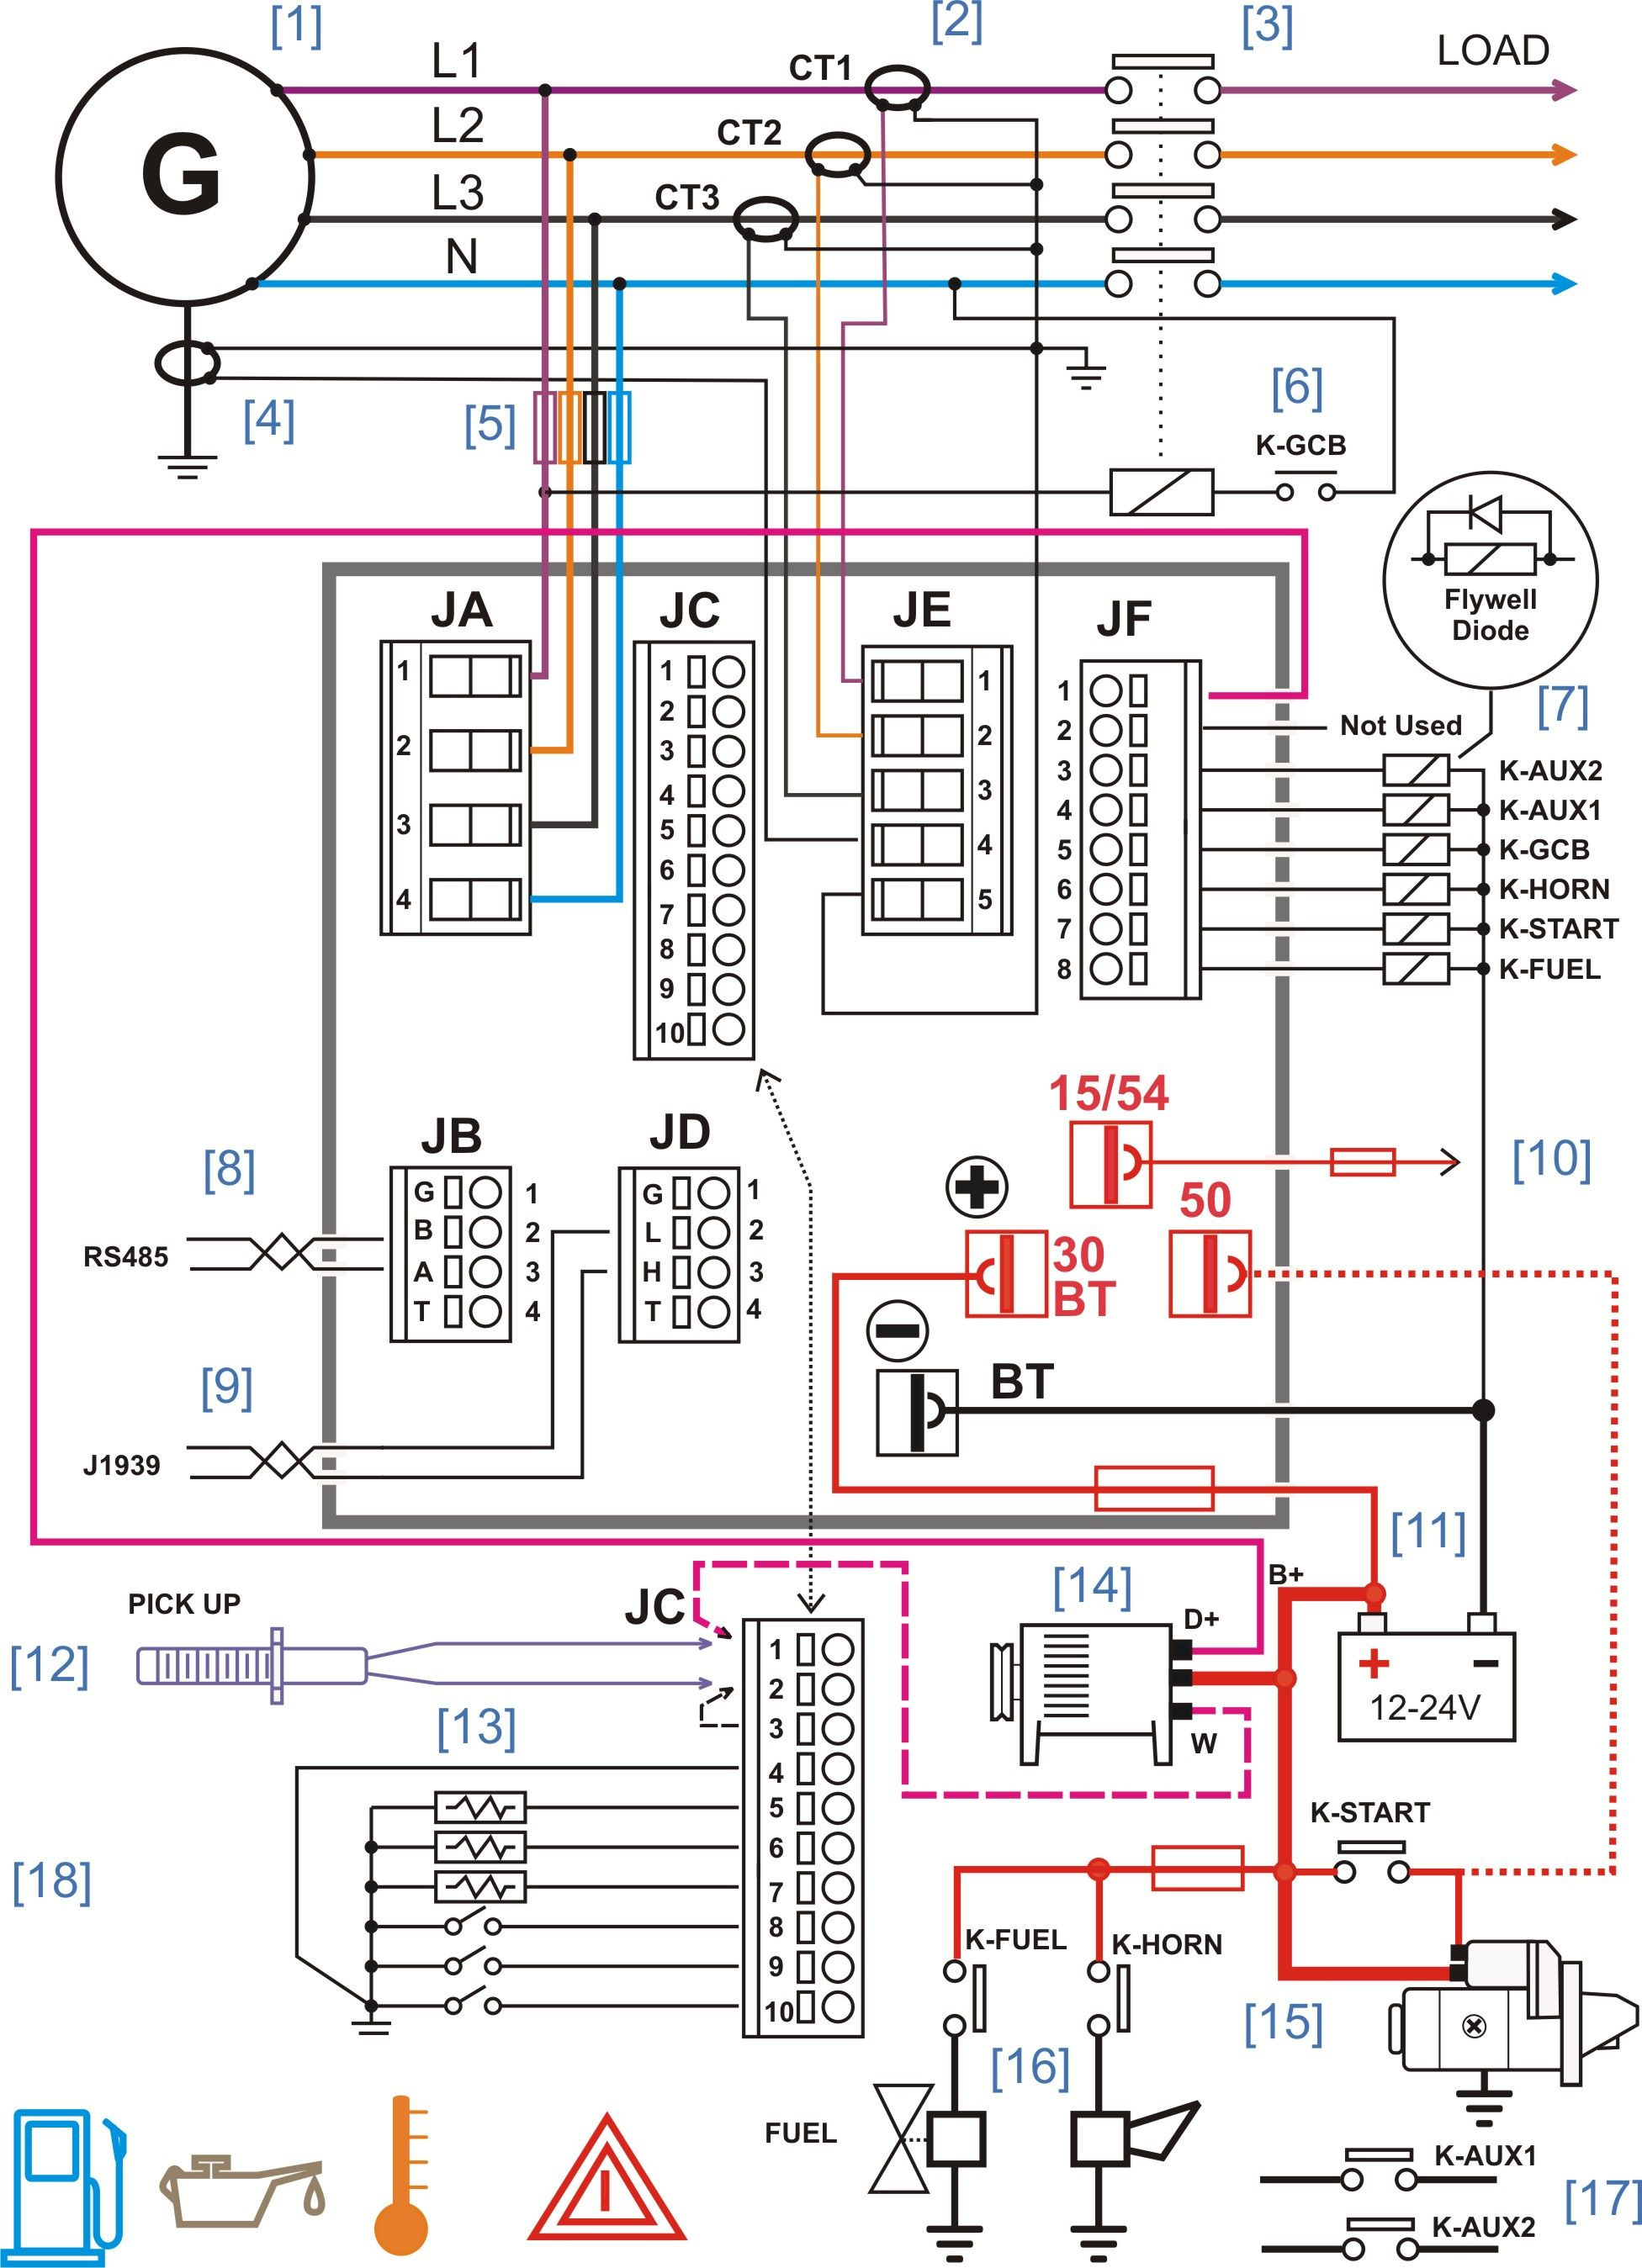 standby generator wiring diagram Collection-Diesel Generator Control Panel Wiring Diagram 18-b